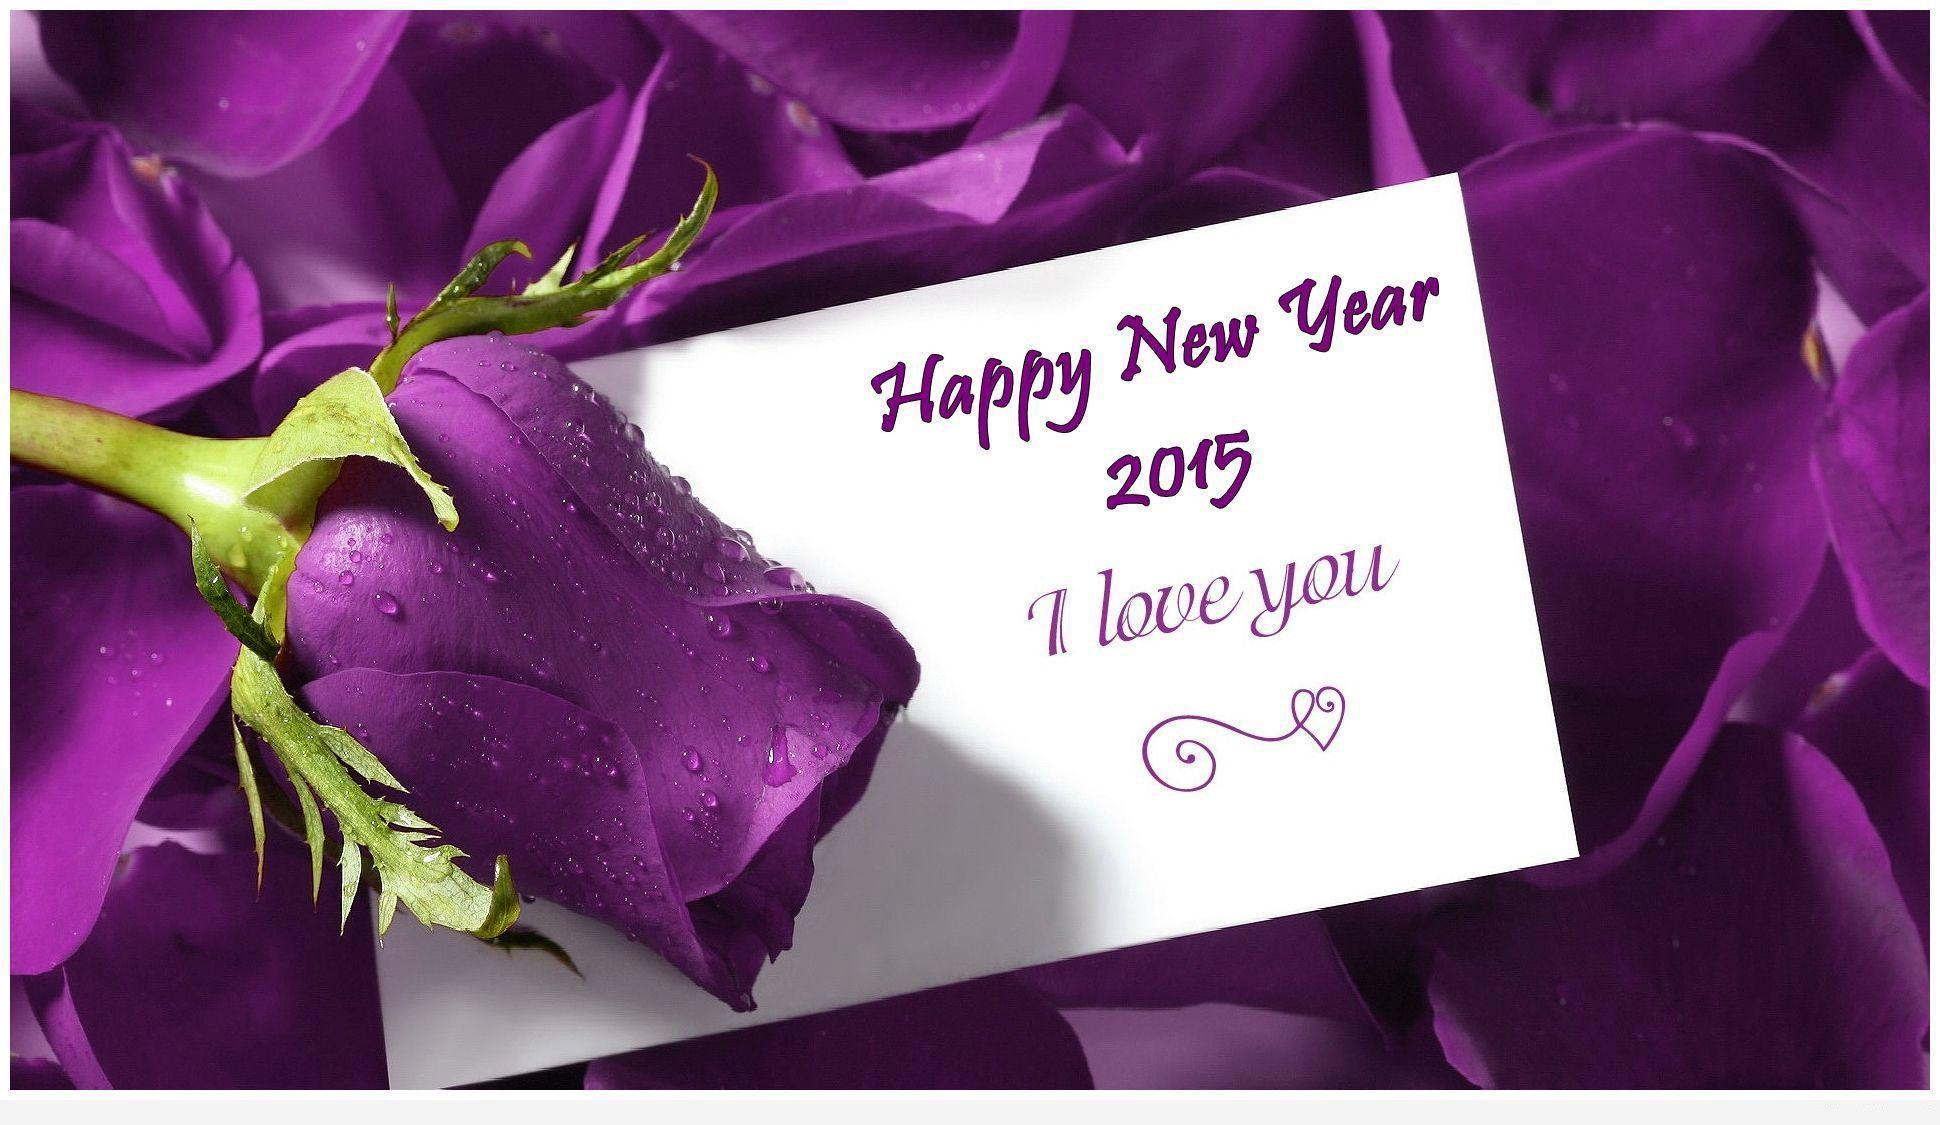 Love Wallpaper For New Year : Happy New Year 2015 Love Wallpapers - Wallpaper cave